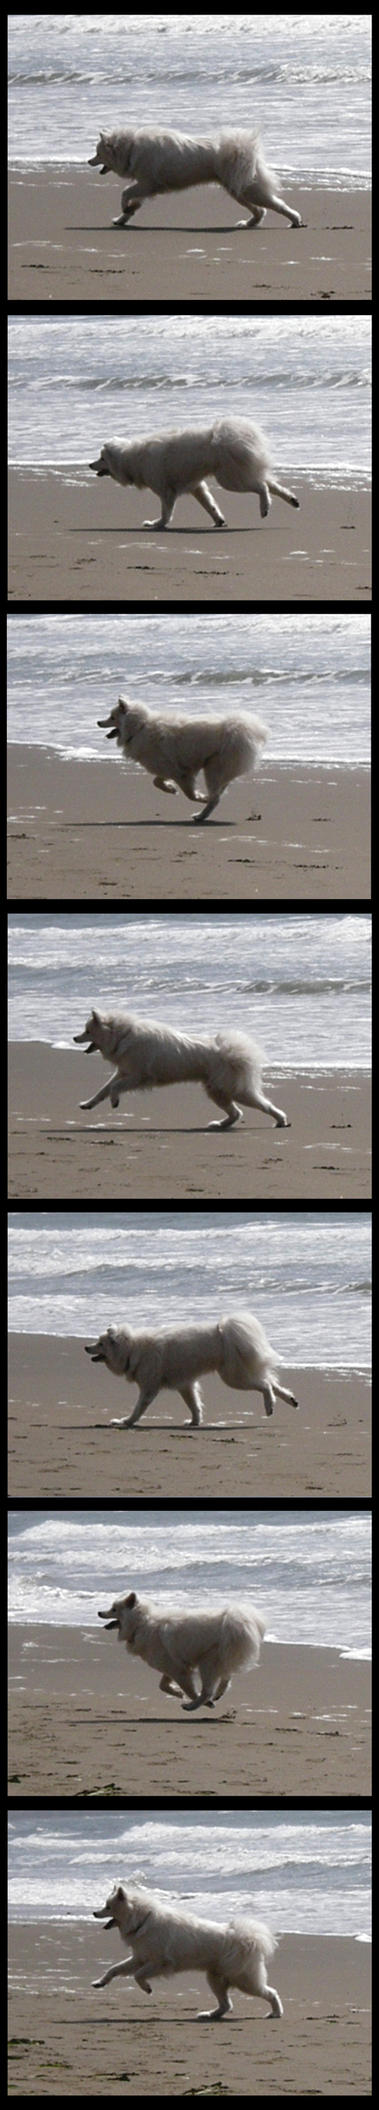 Samoyed Run Cycle by Enzyme-Action